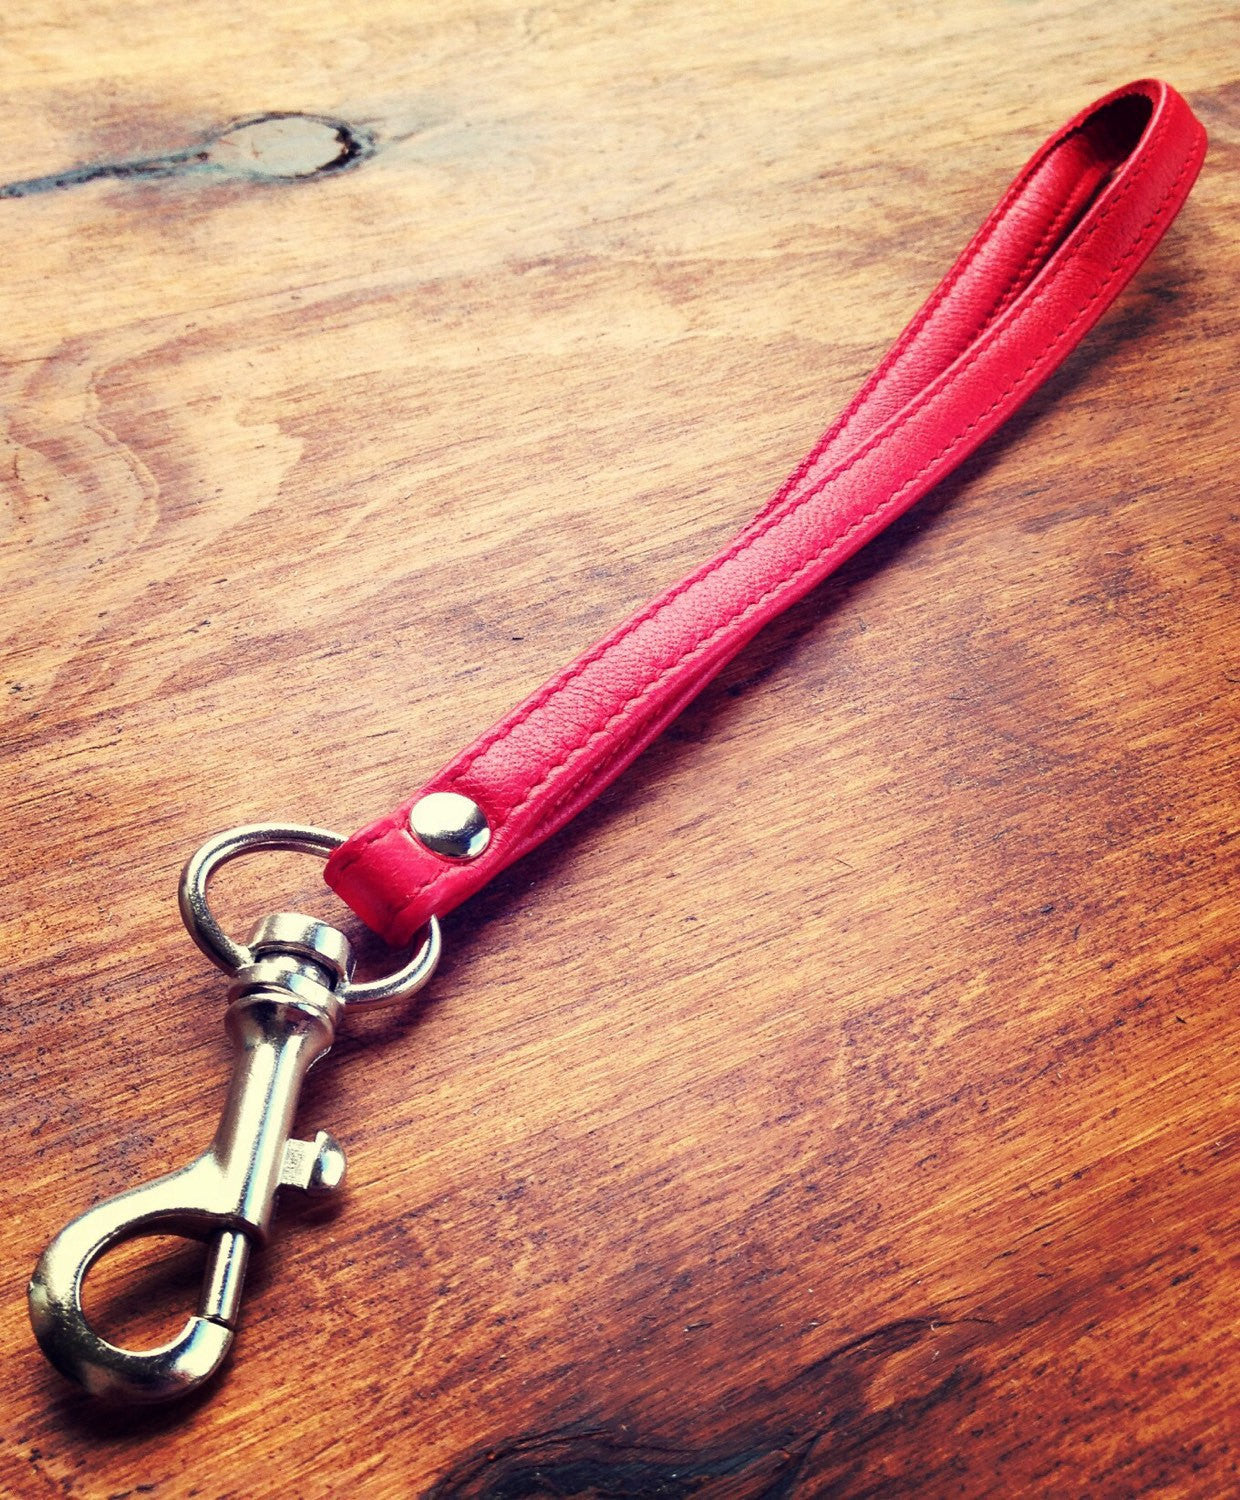 The Strap-Leather Key Strap perfect for keeping your keys handy in your bag.